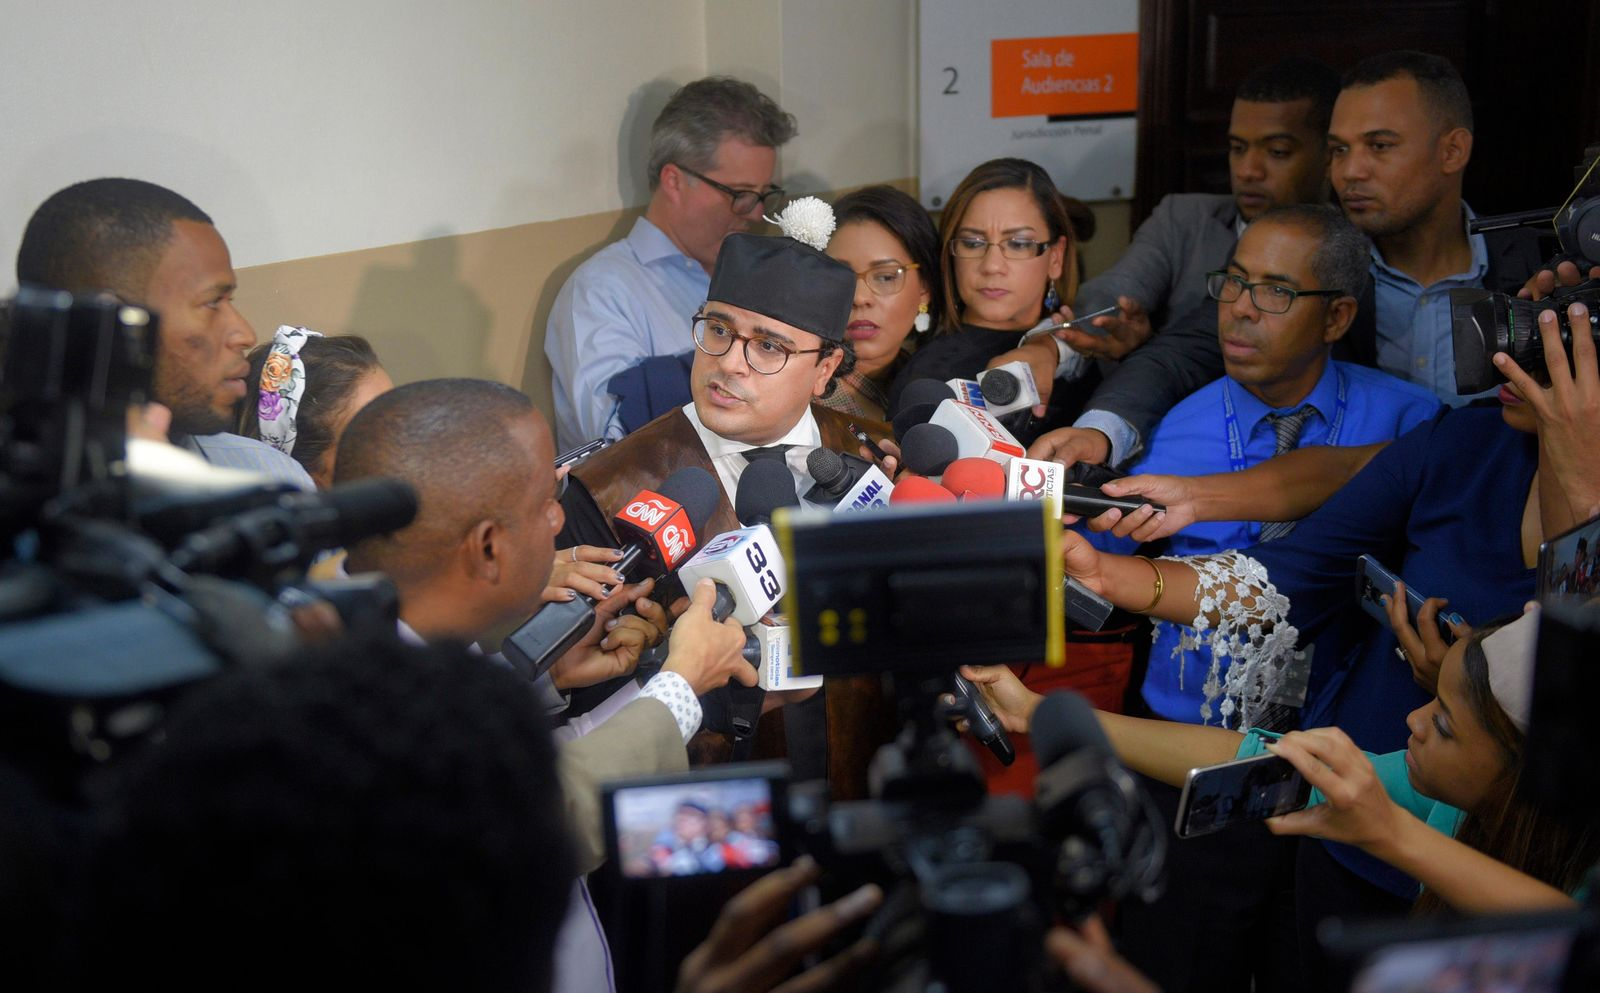 Lawyer José Martínez Hoepelman, who represents former Boston Red Sox slugger David Ortiz, speaks to the press outside court in Santo Domingo, Dominican Republic, Monday, June 17, 2019. Ortiz was shot in the back at a bar in the Dominican Republic on Sunday, June 9. (AP Photo/Roberto Guzman)